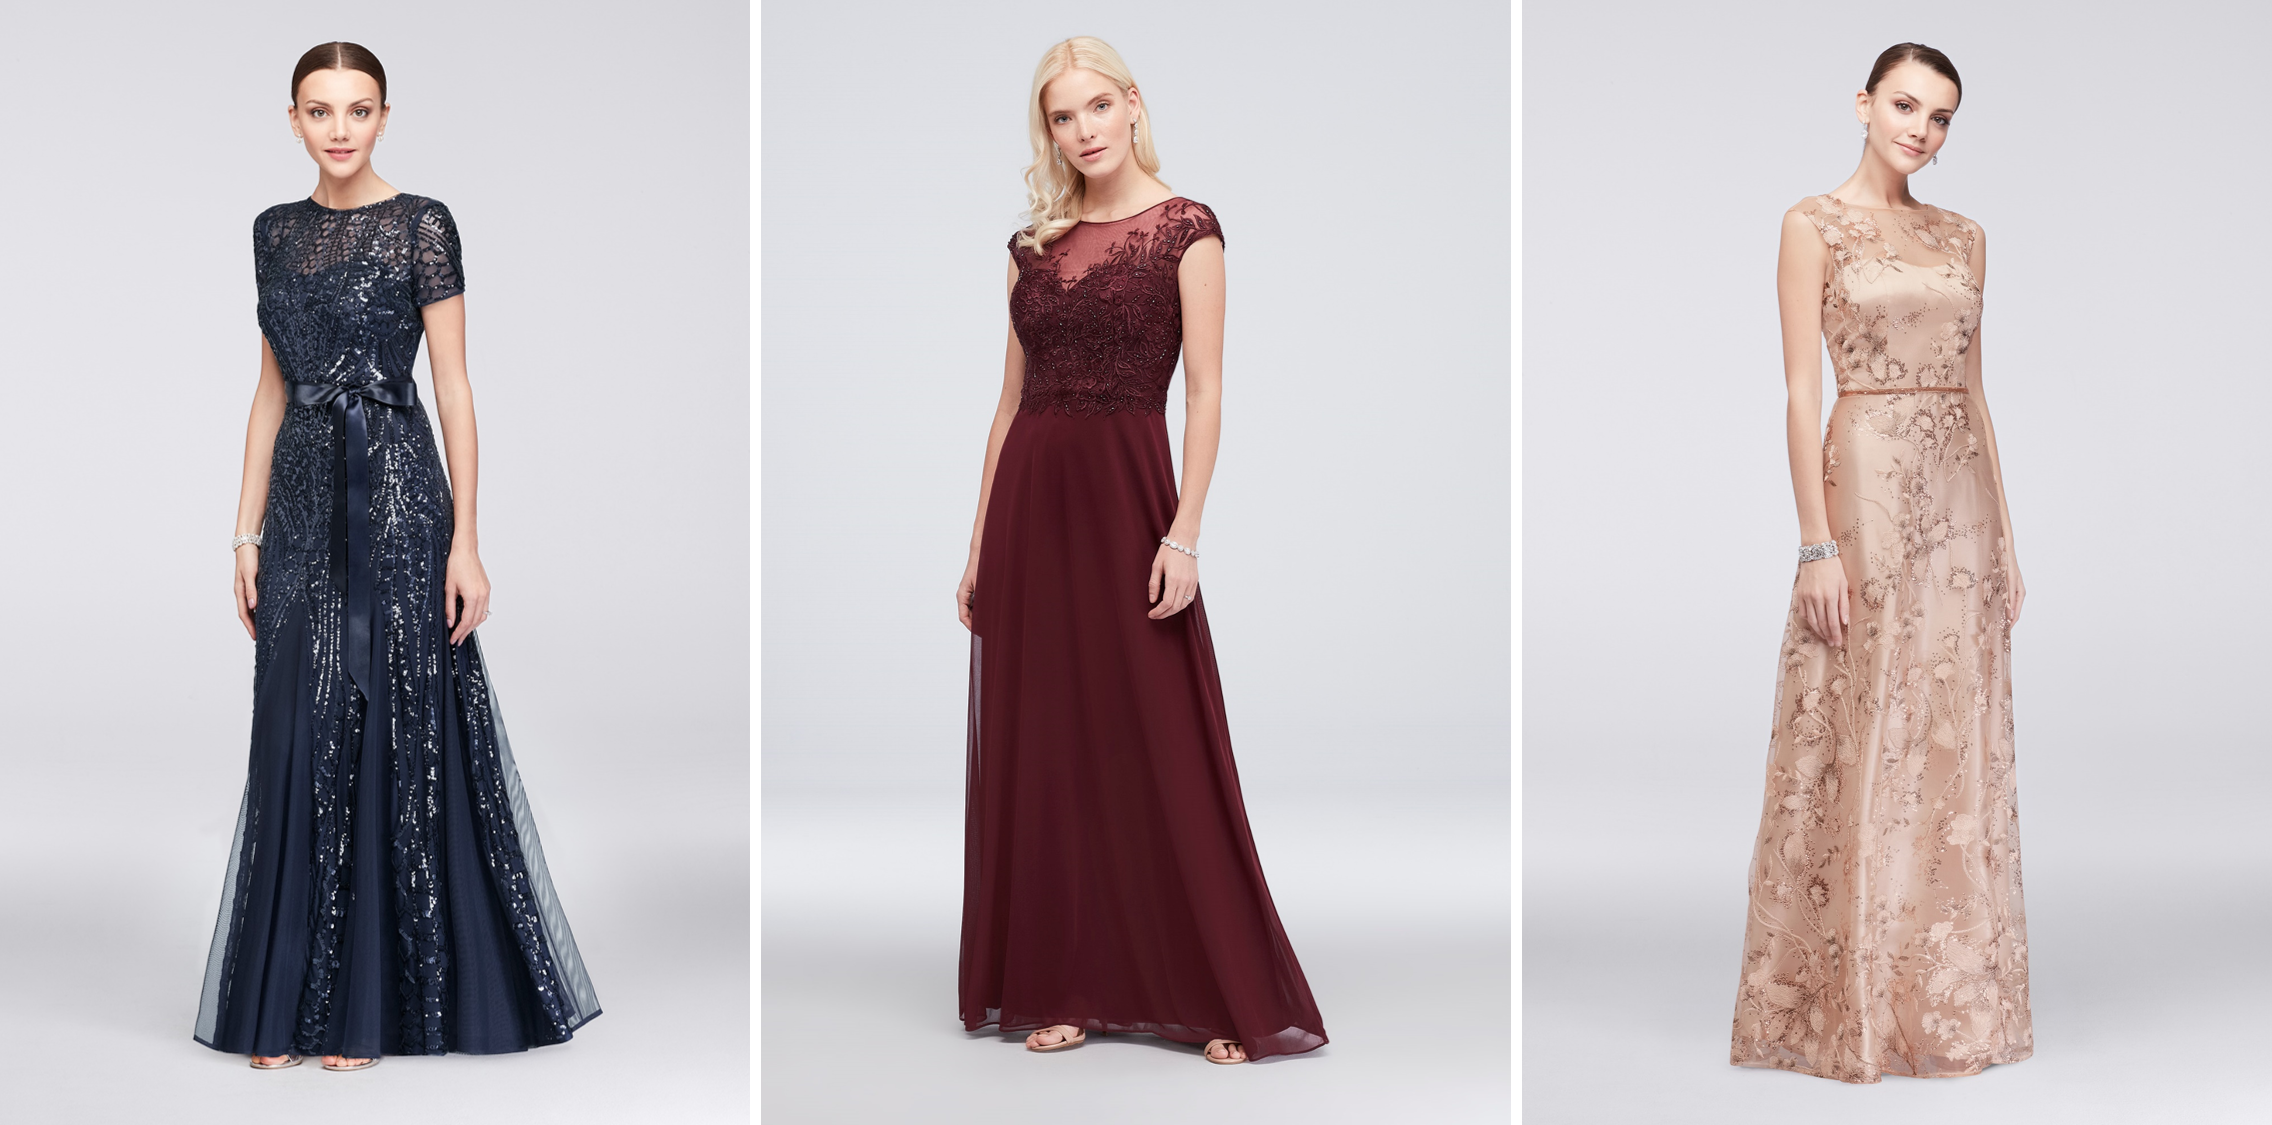 Mother of the Bride Dresses for Different Body Types | Define Your Waist